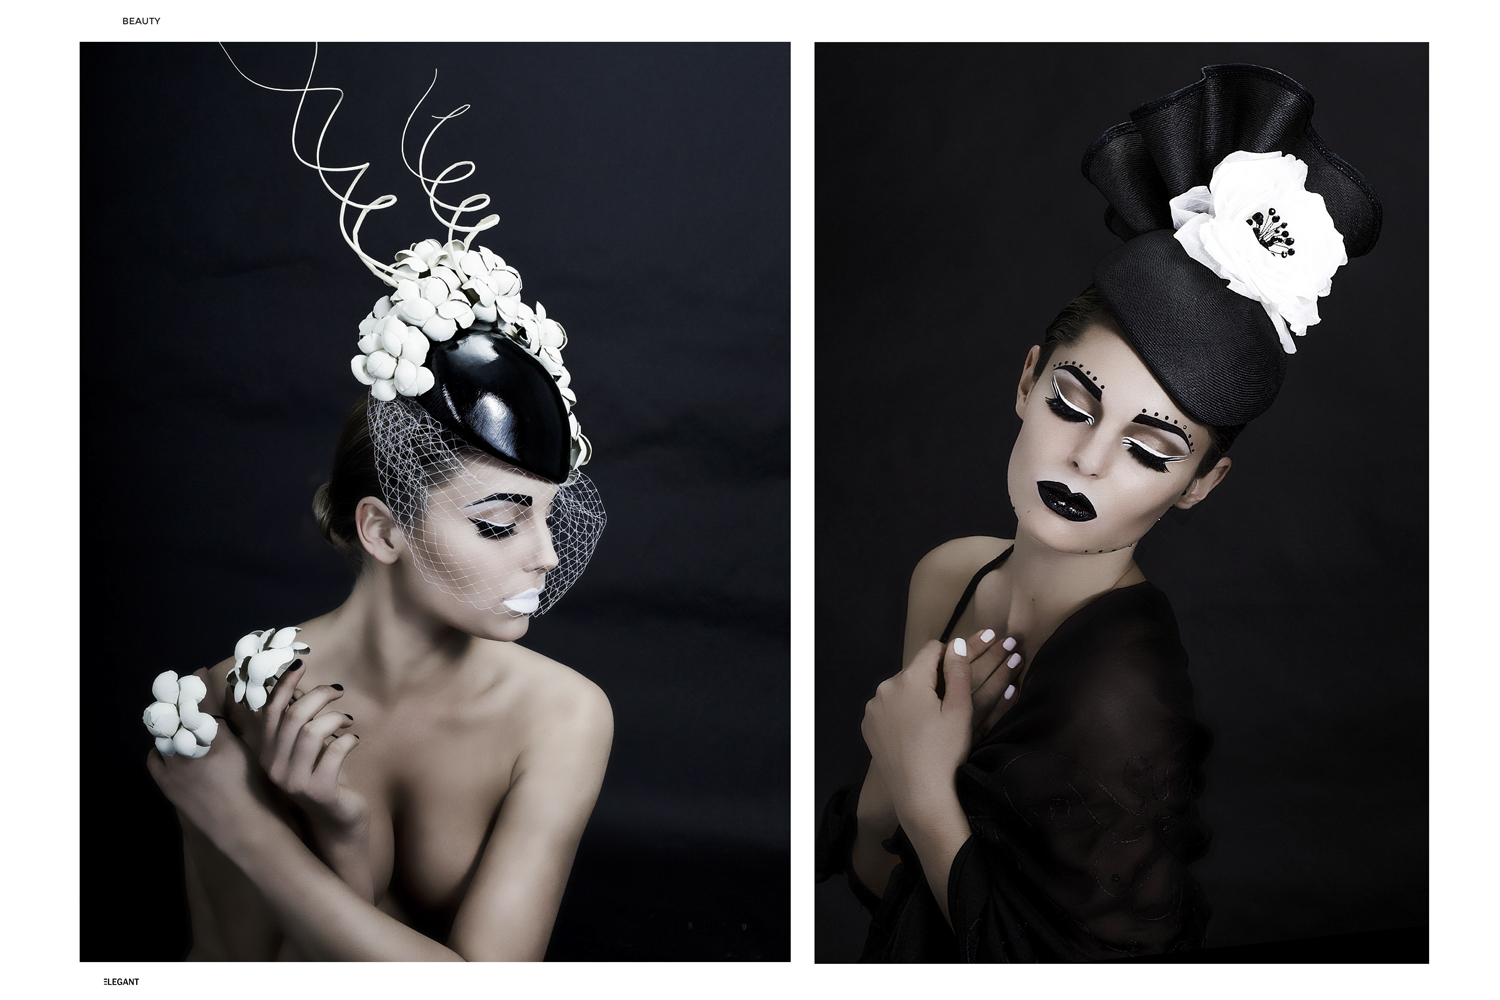 2 pages spread on elegant magazine fashion couture